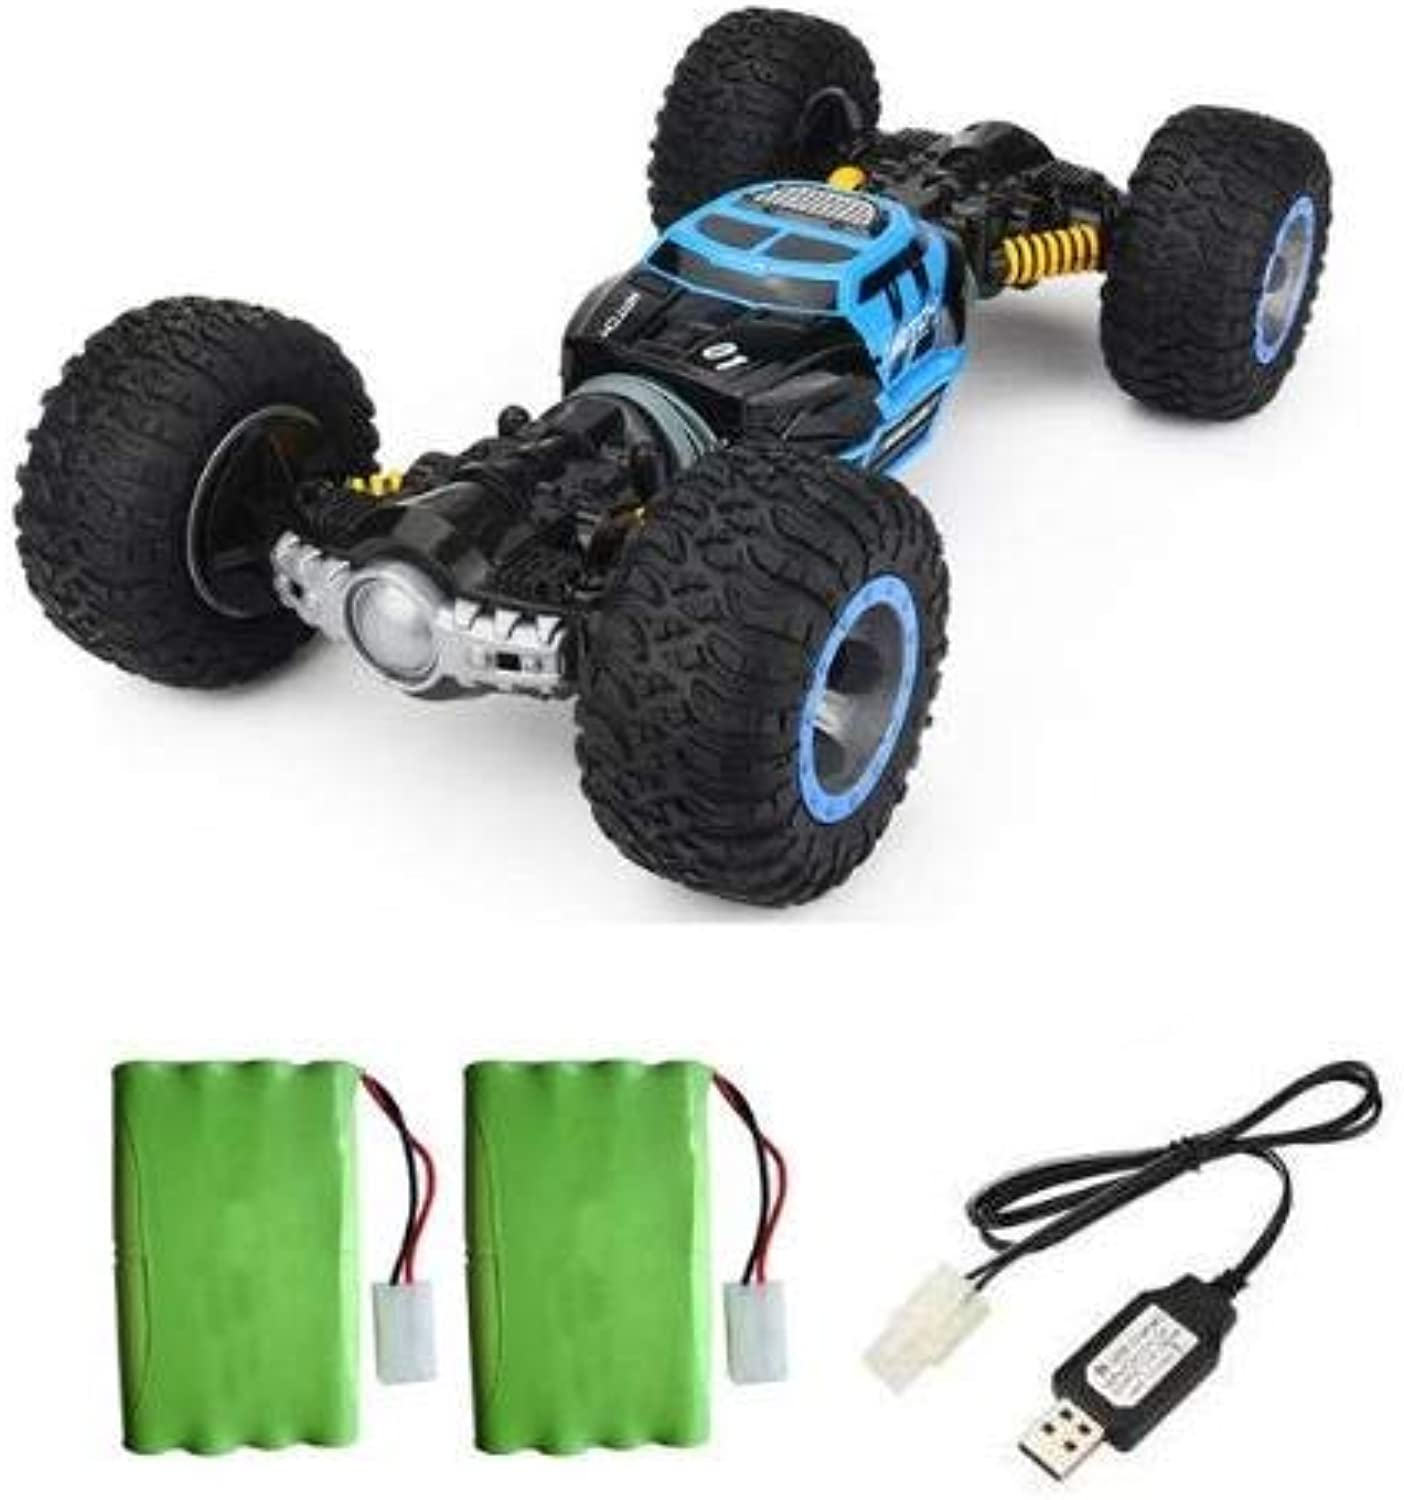 Generic RC Car 1 16 Scale DoubleSided 2.4GHz One Key Transform AllTerrain OffRoad Vehicle Varanid Climbing Truck Remote Control Car bluee 2 Battery